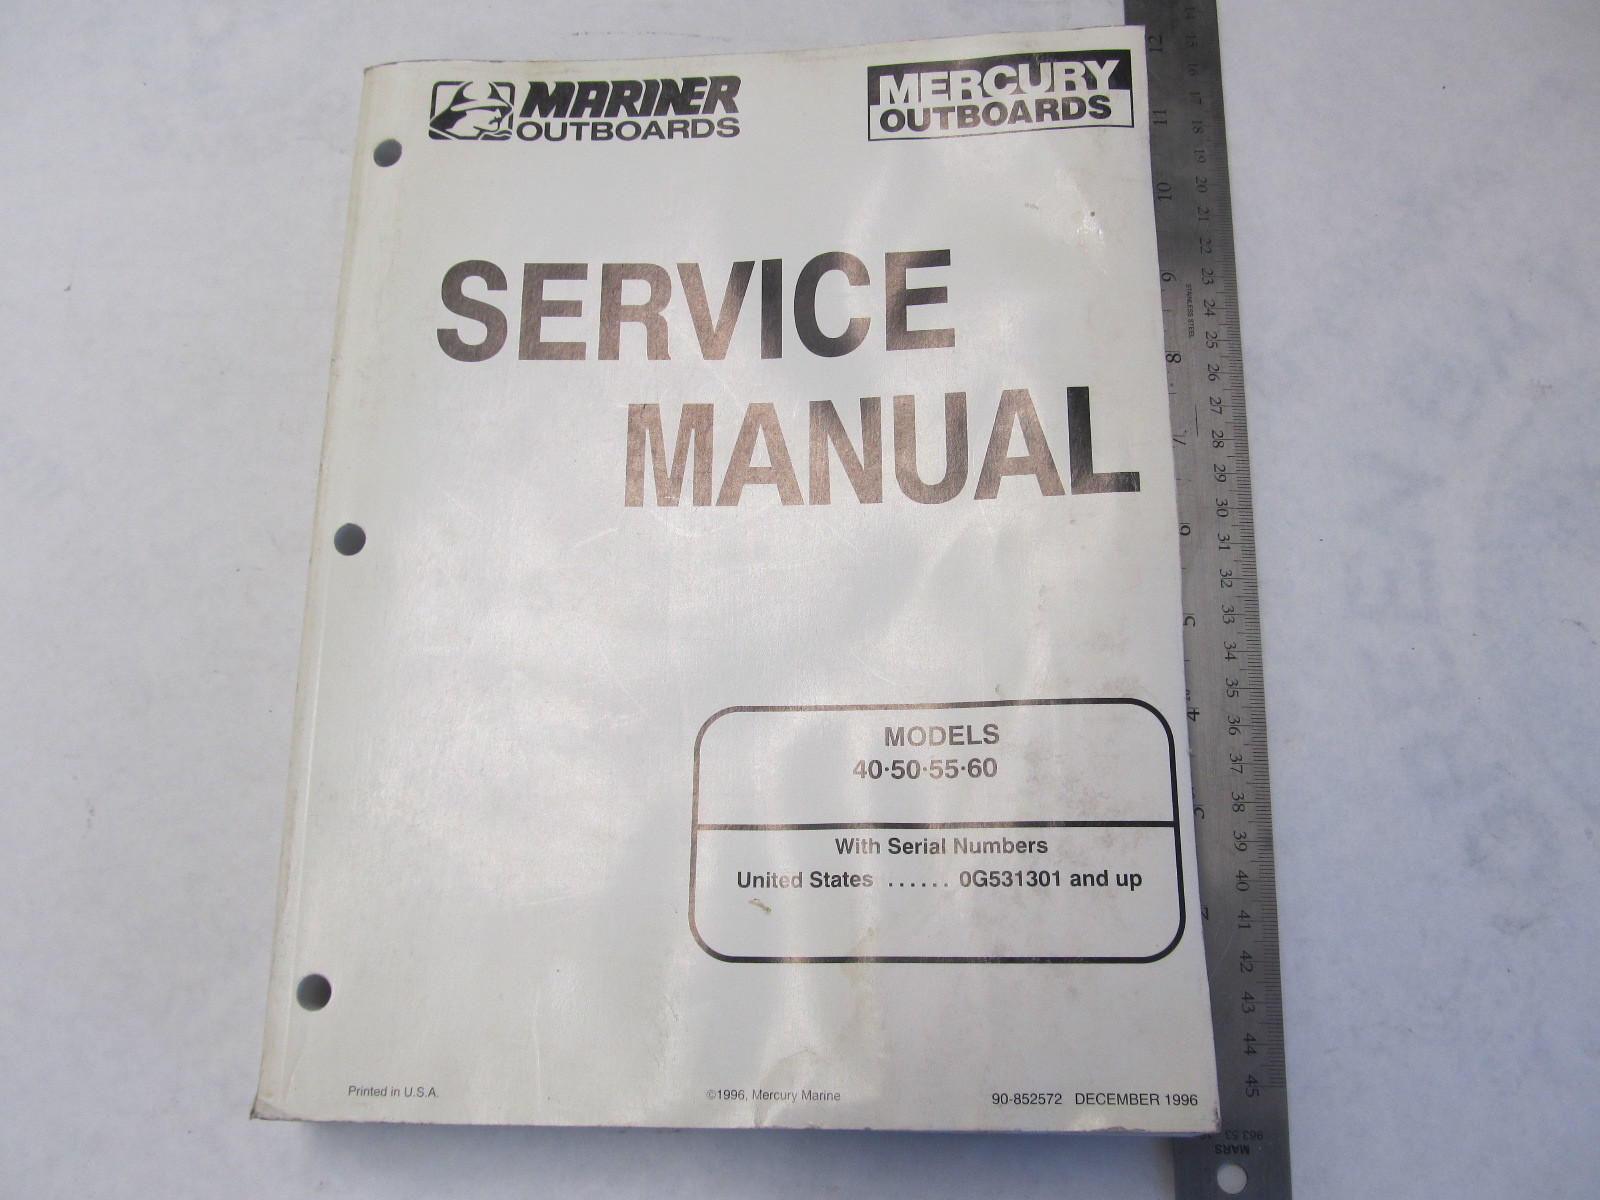 Mercury marine service manual free download service manual mercury 15 hp 4  stroke service manual vault offers service manuals for several. dyed klee  rubbing ...